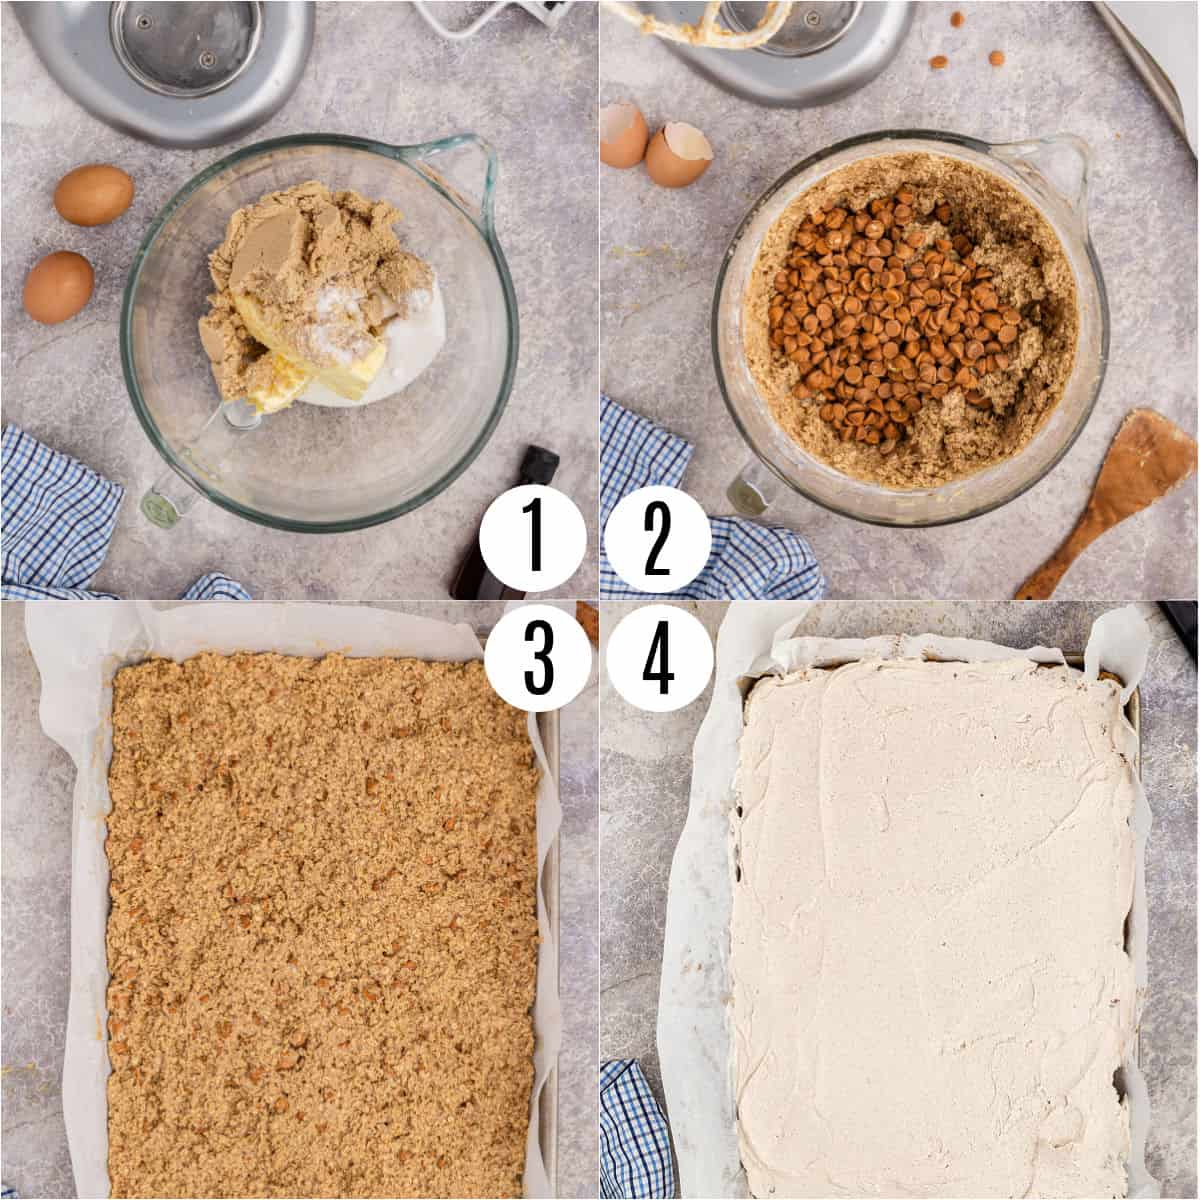 Step by step photos showing how to make oatmeal scotchie cookie bars.